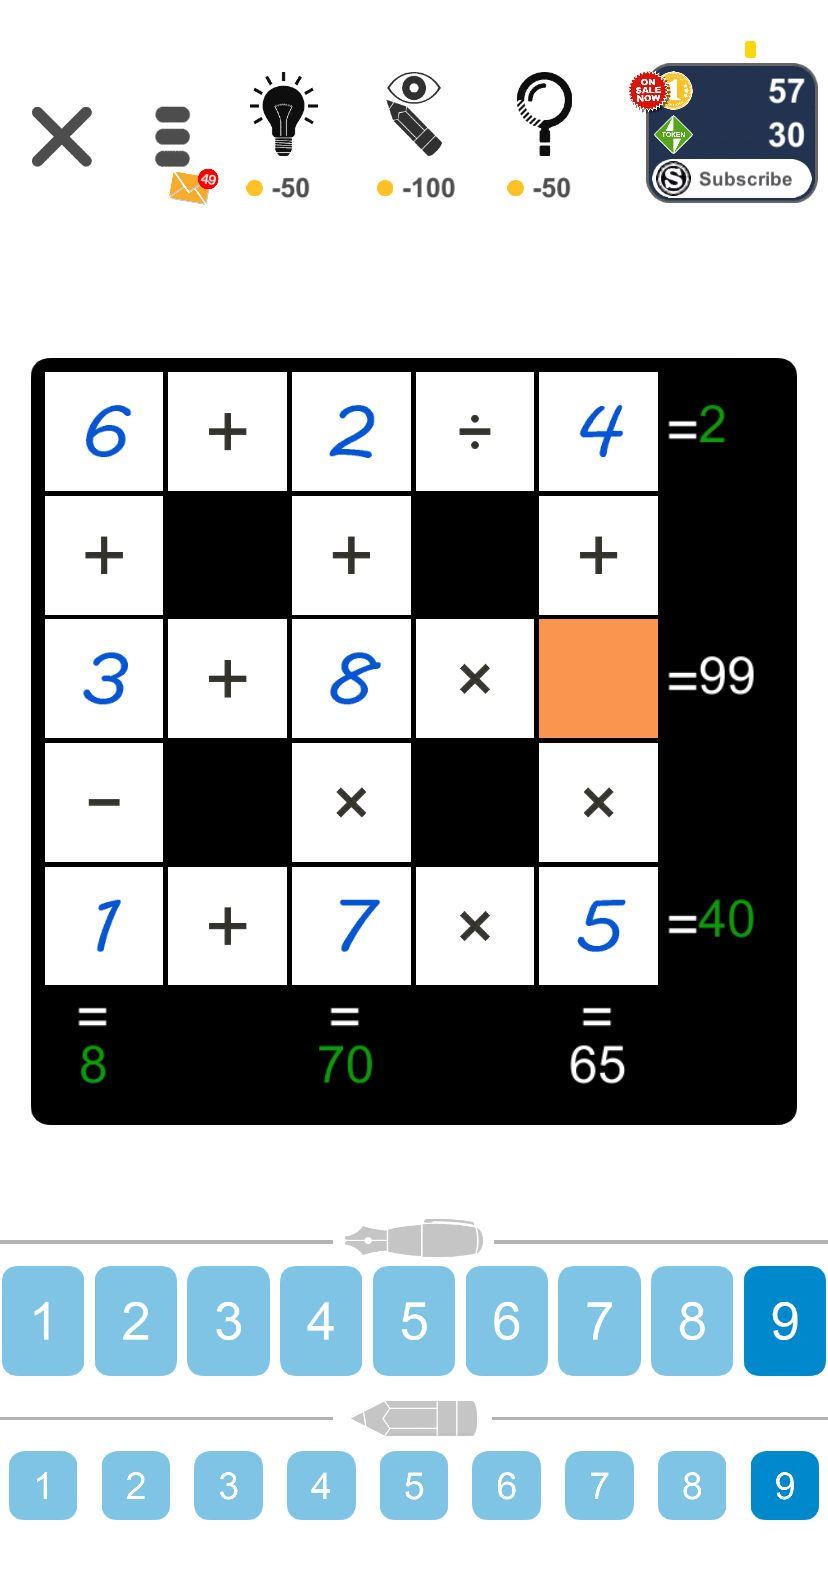 Puzzle Page Cross Sum September 26 2021 Answers » Qunb